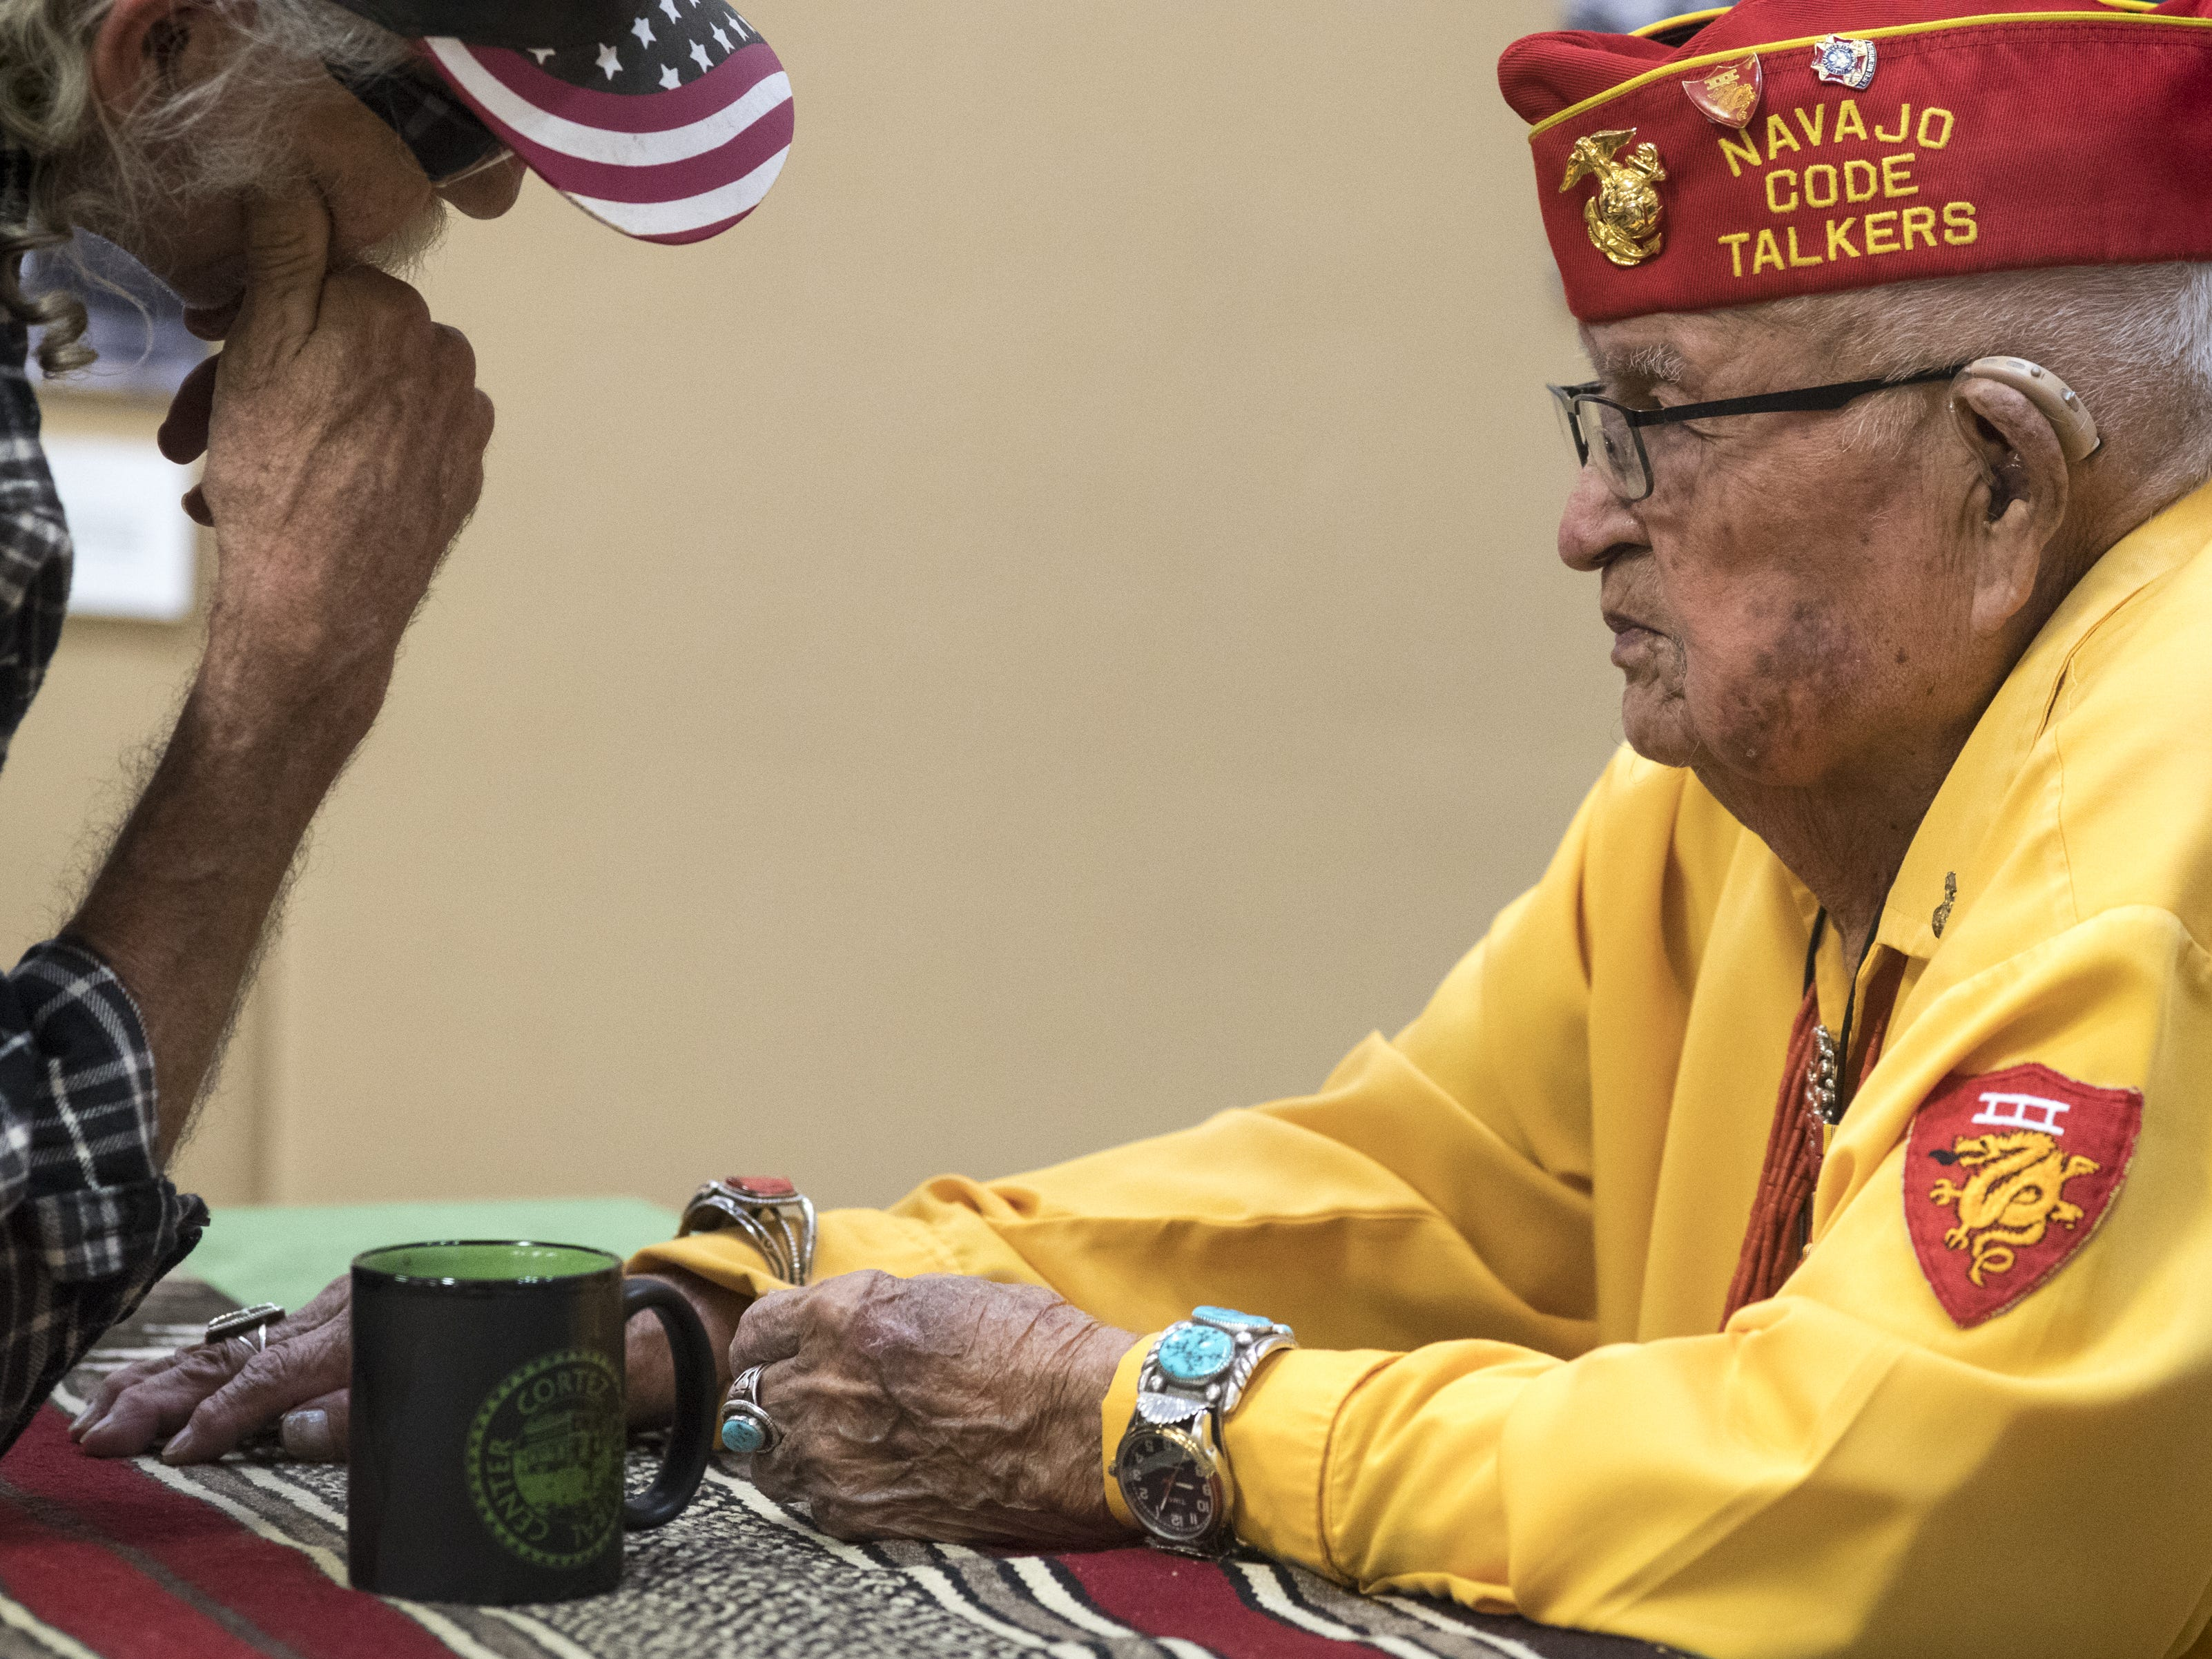 Navajo Code Talker Sam Sandoval is greeted by a guest on Aug. 14, 2018, after speaking at the Cortez Cultural Center in Cortez, Colorado.